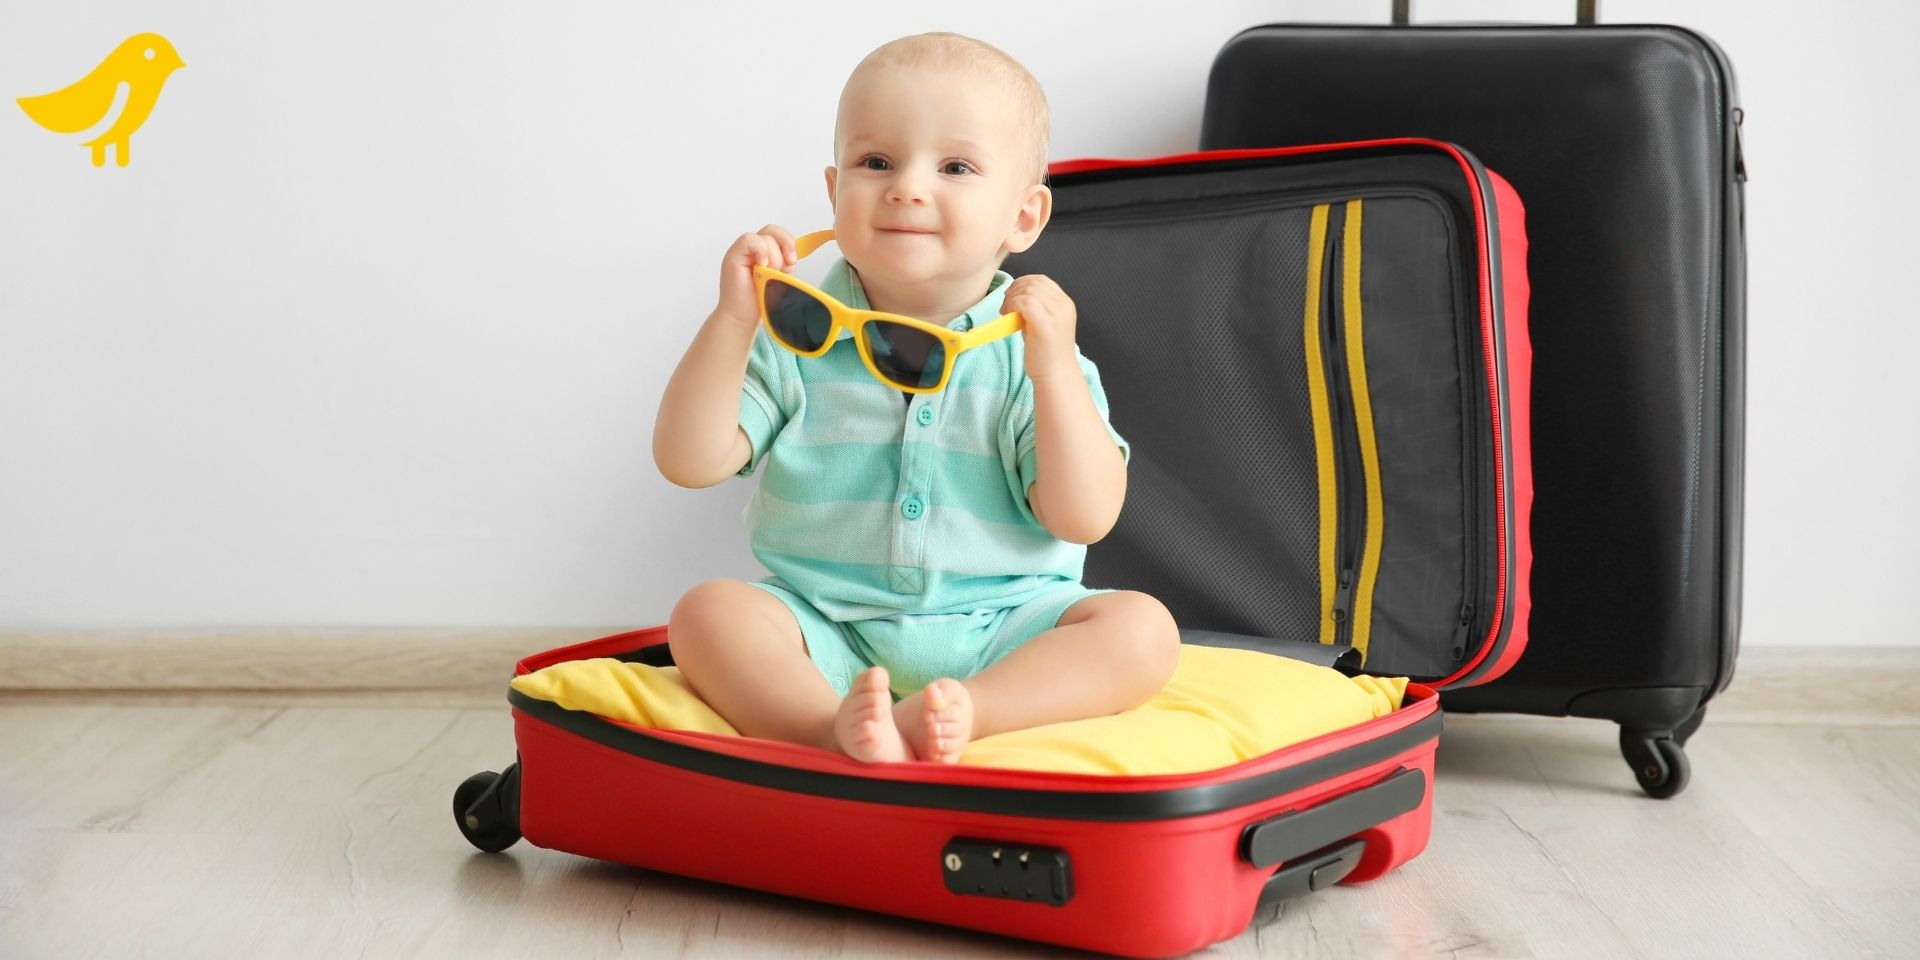 Weekend Break Packing list for a baby